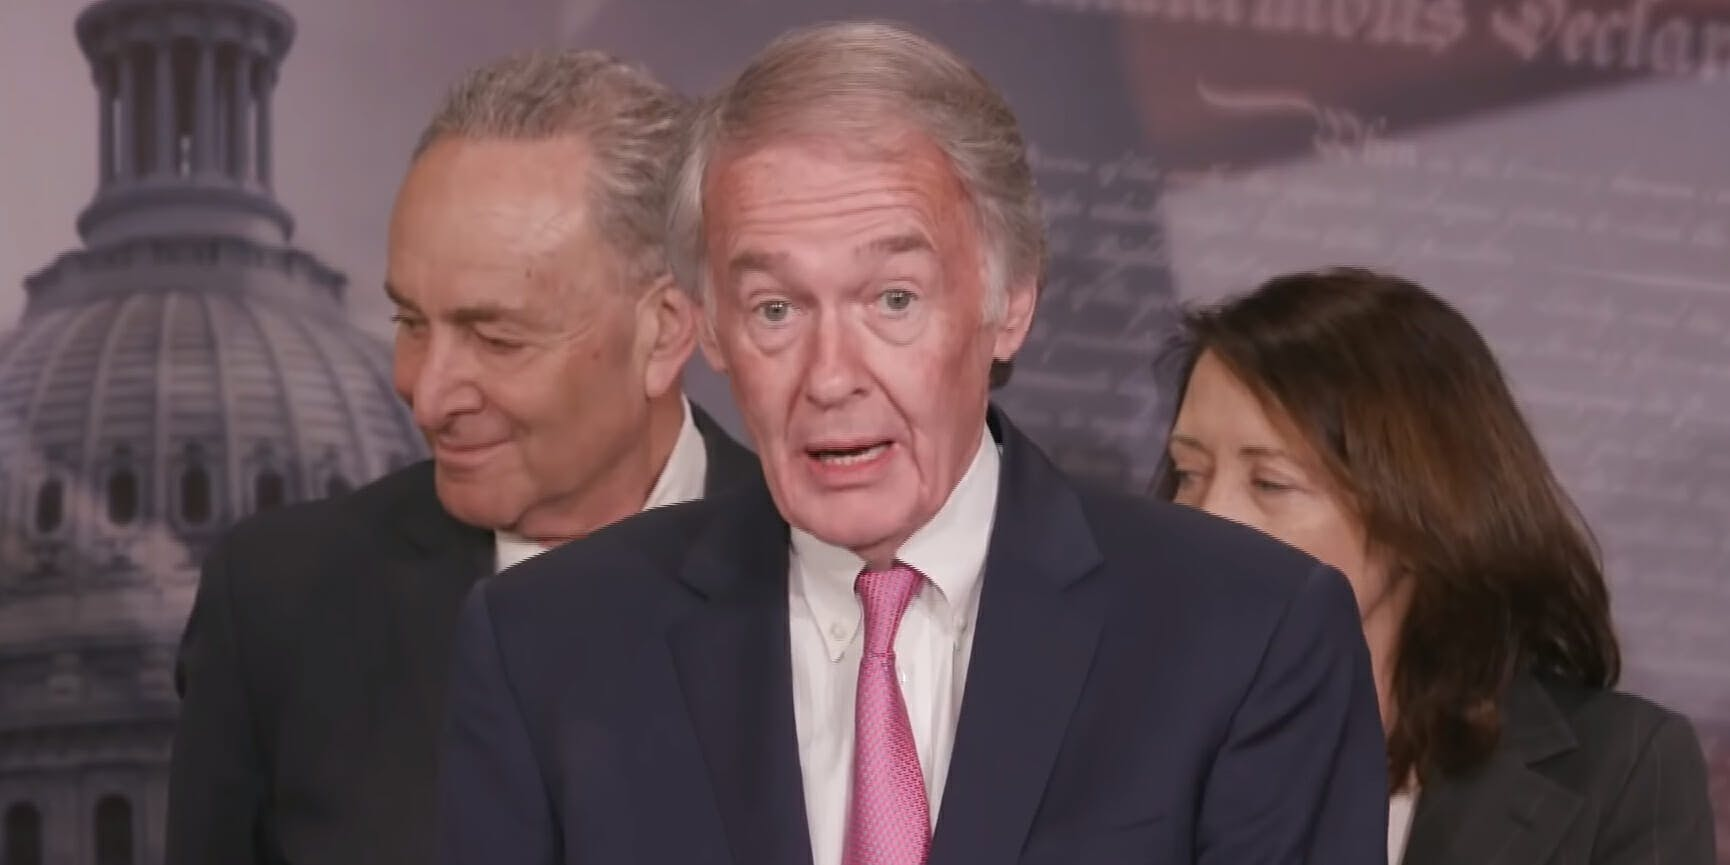 Sen. Edward Markey addresses reporters after the Senate passed its net neutrality congressional review act vote in May.